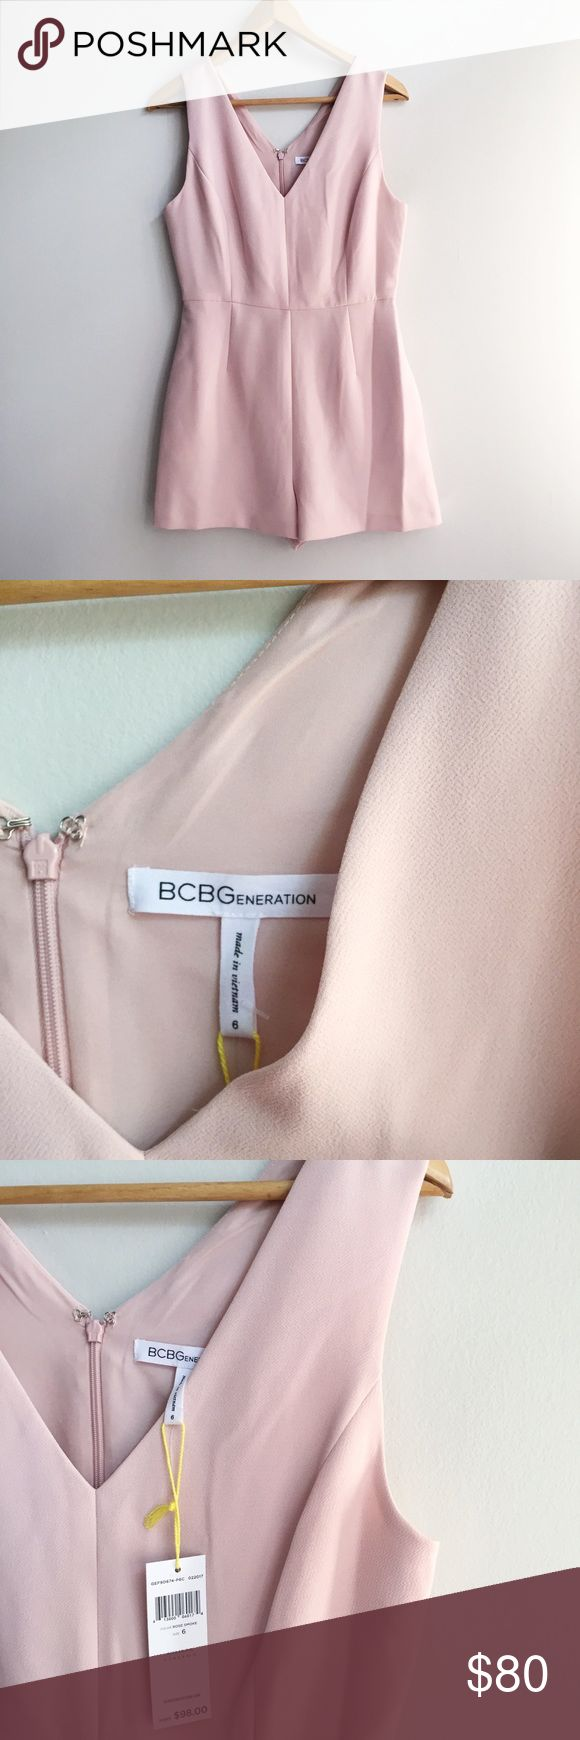 NWT BCBGeneration light pink vneck romper size 6 NWT- never worn, EXCELLENT condition! Size 6- true to size for BCBGeneration! I usually wear a small-medium and am a 34D and this fits me like a glove! Bought for my sisters wedding rehearsal dinner but ended up not wearing it because it was chilly out and wore a maxi instead! Bought for $98 THIS season! Super flattering and classy look :) wardrobe statement. BCBGeneration Dresses Mini